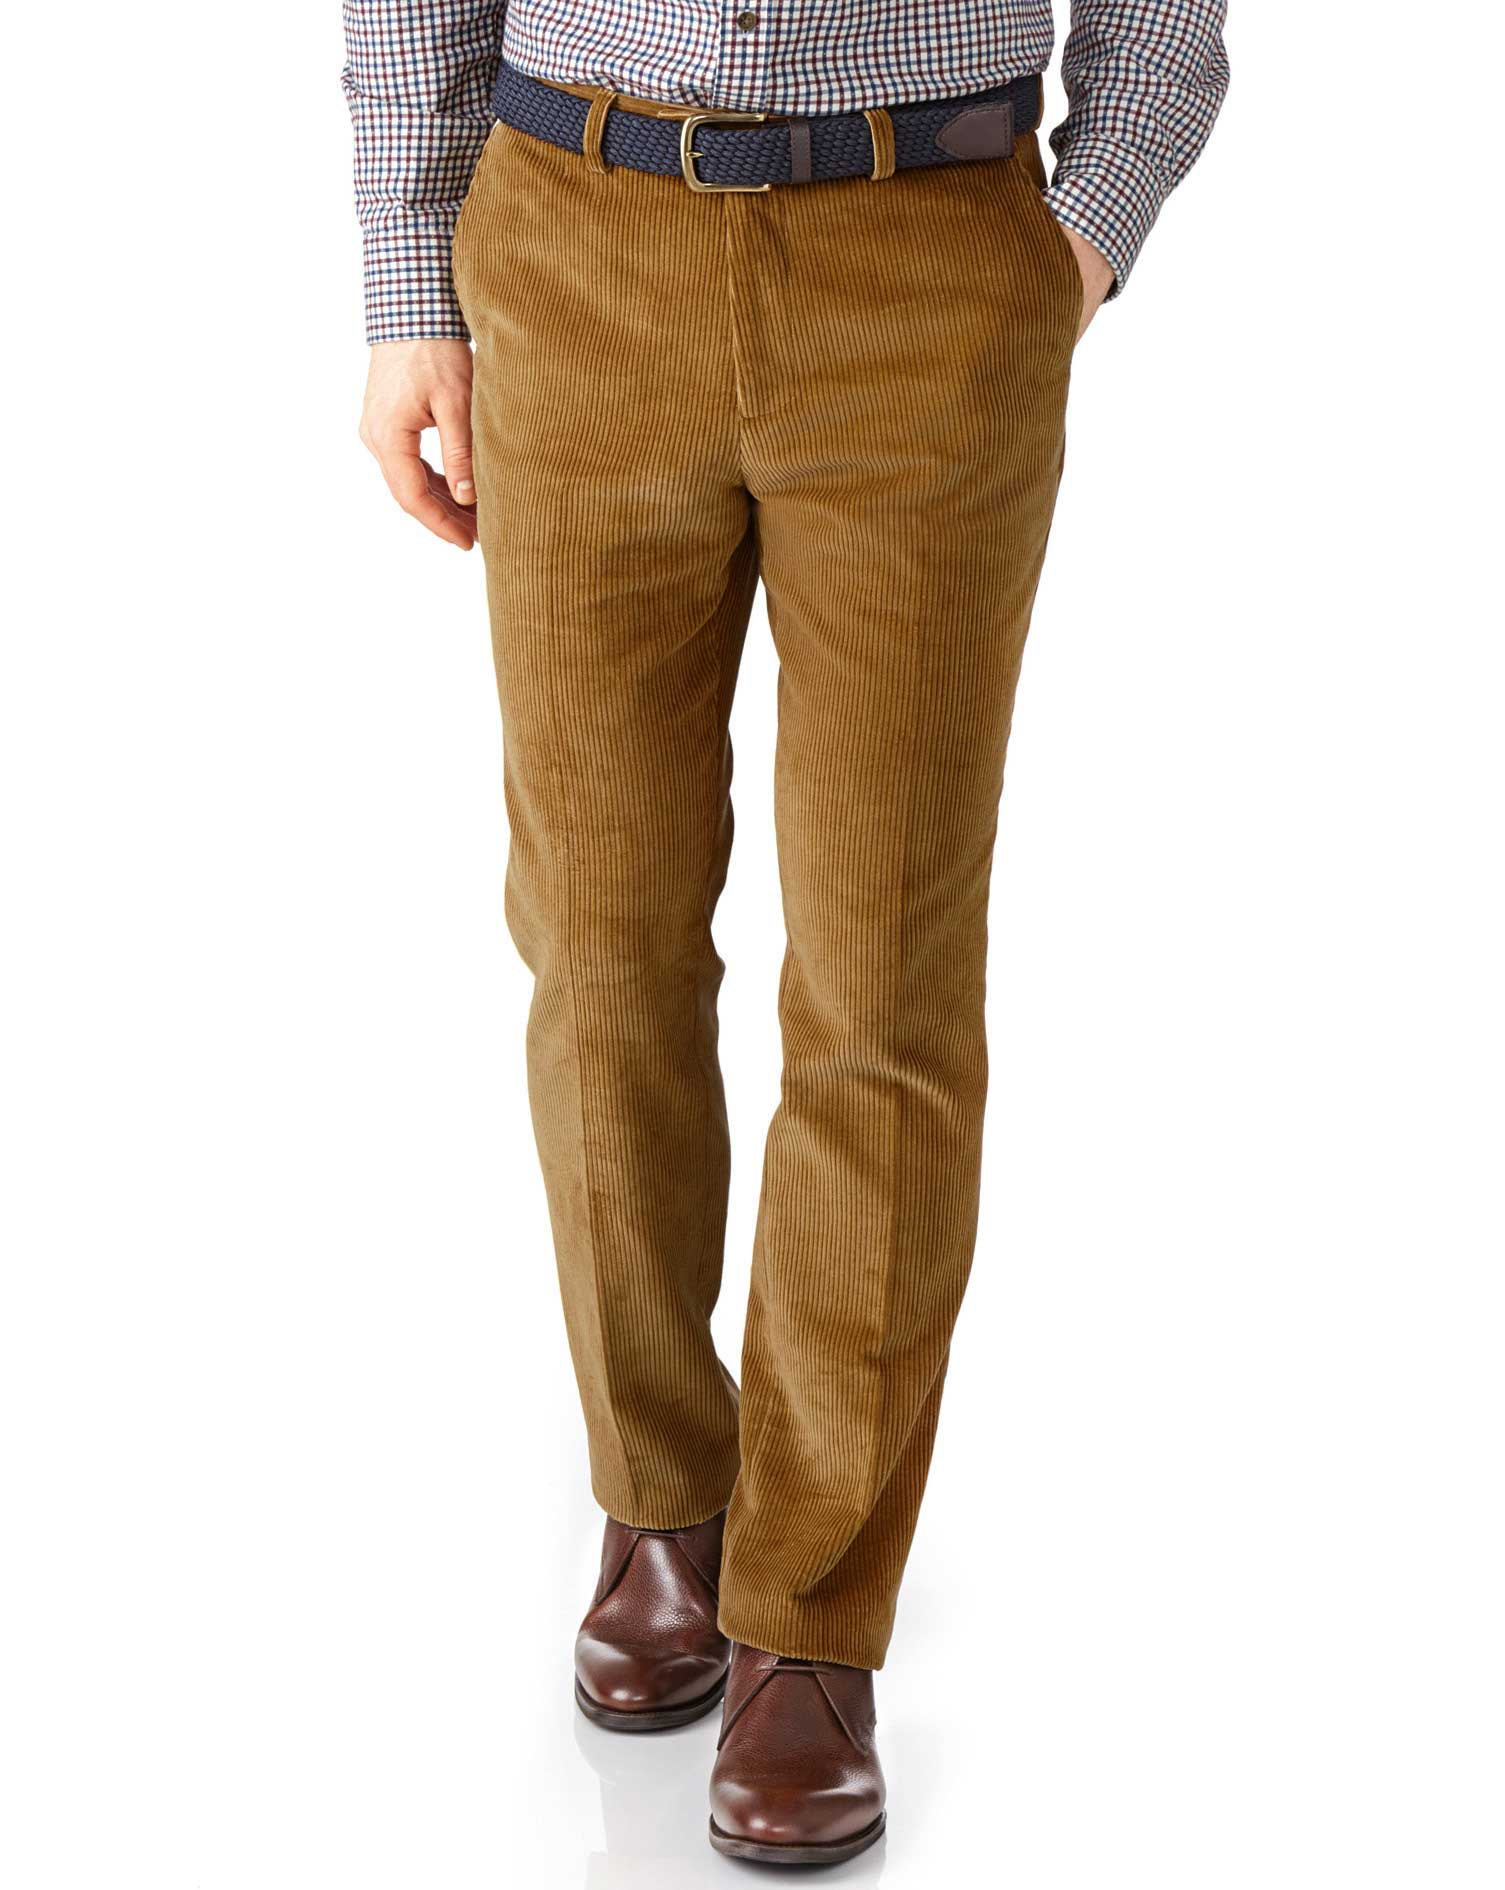 Yellow Extra Slim Fit Jumbo Cord Trouser Size W36 L30 by Charles Tyrwhitt